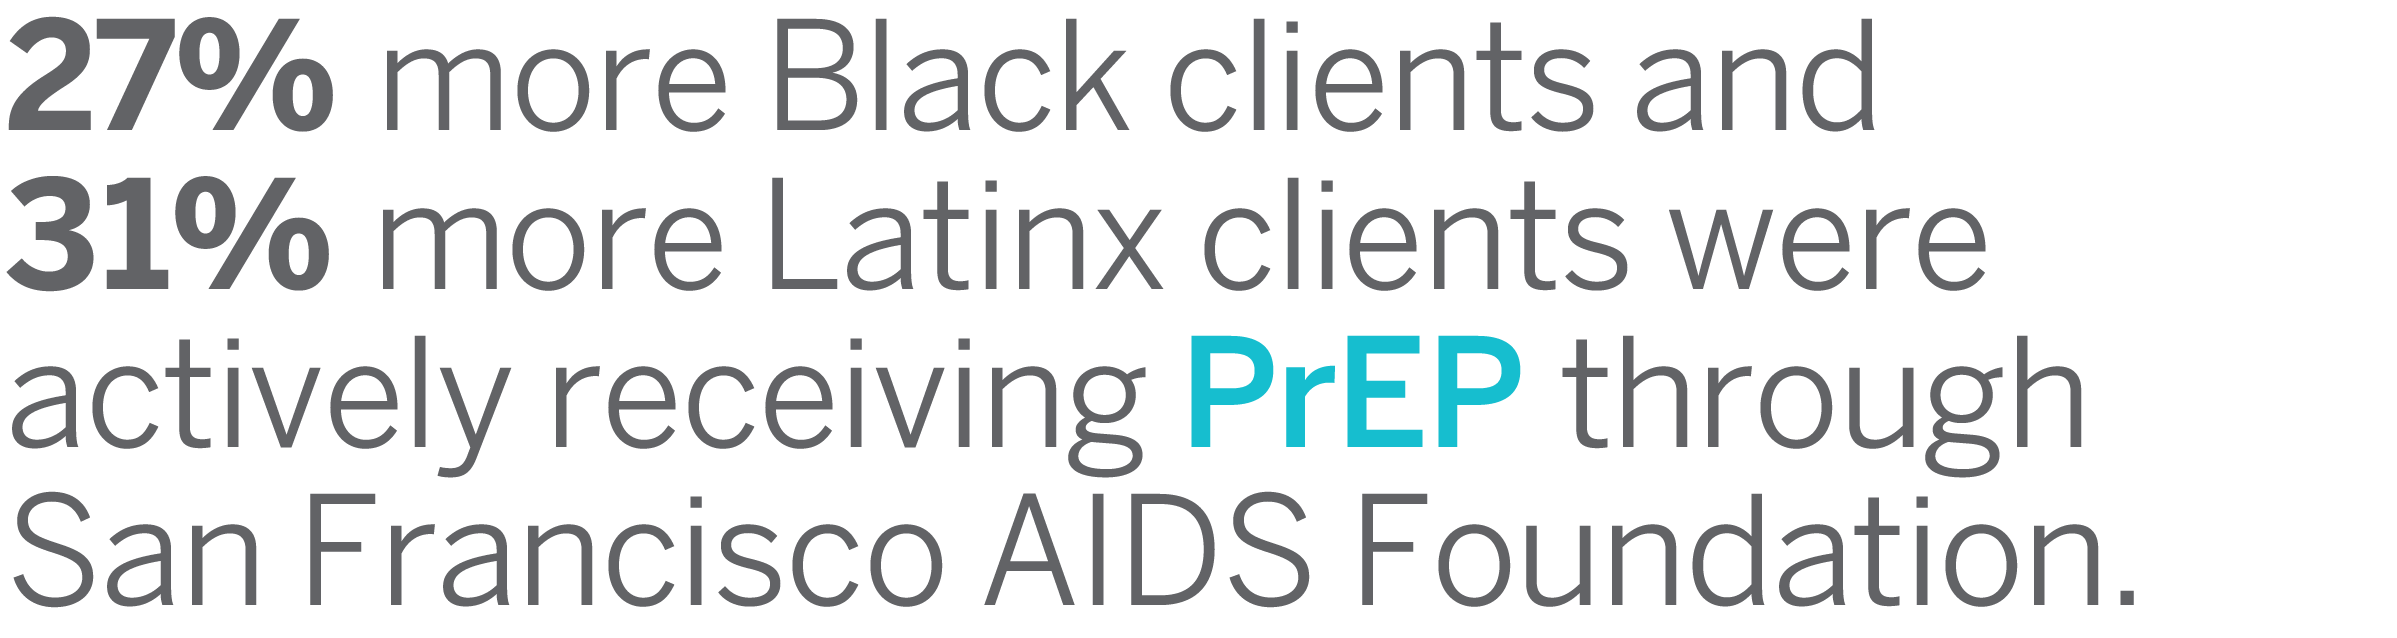 27% more Black clients and 31% more Latinx clients were actively receiving PrEP through SFAF